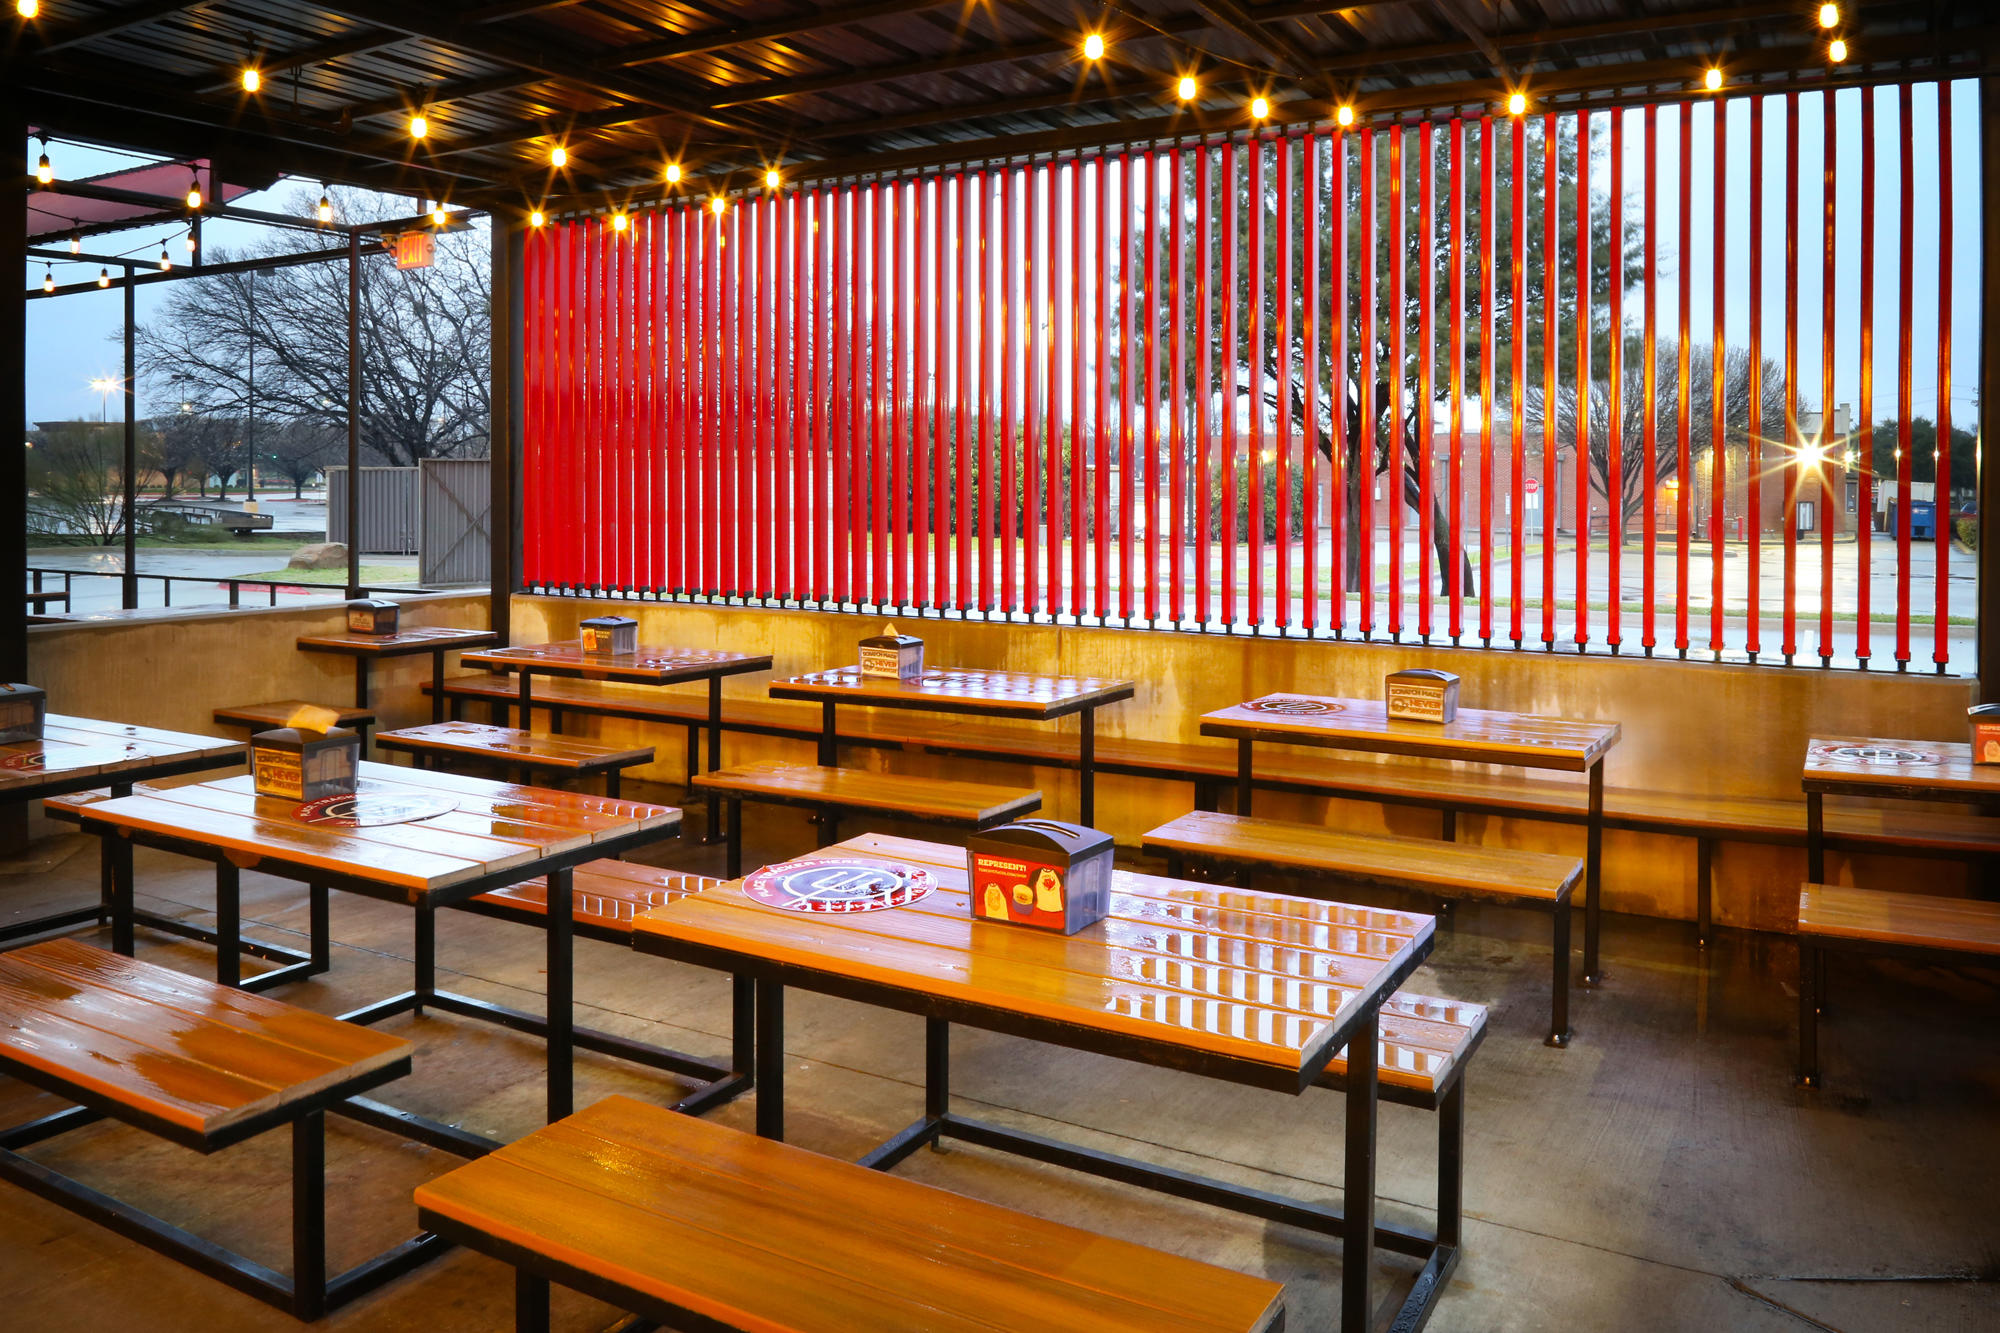 Torchy's Tacos image 6